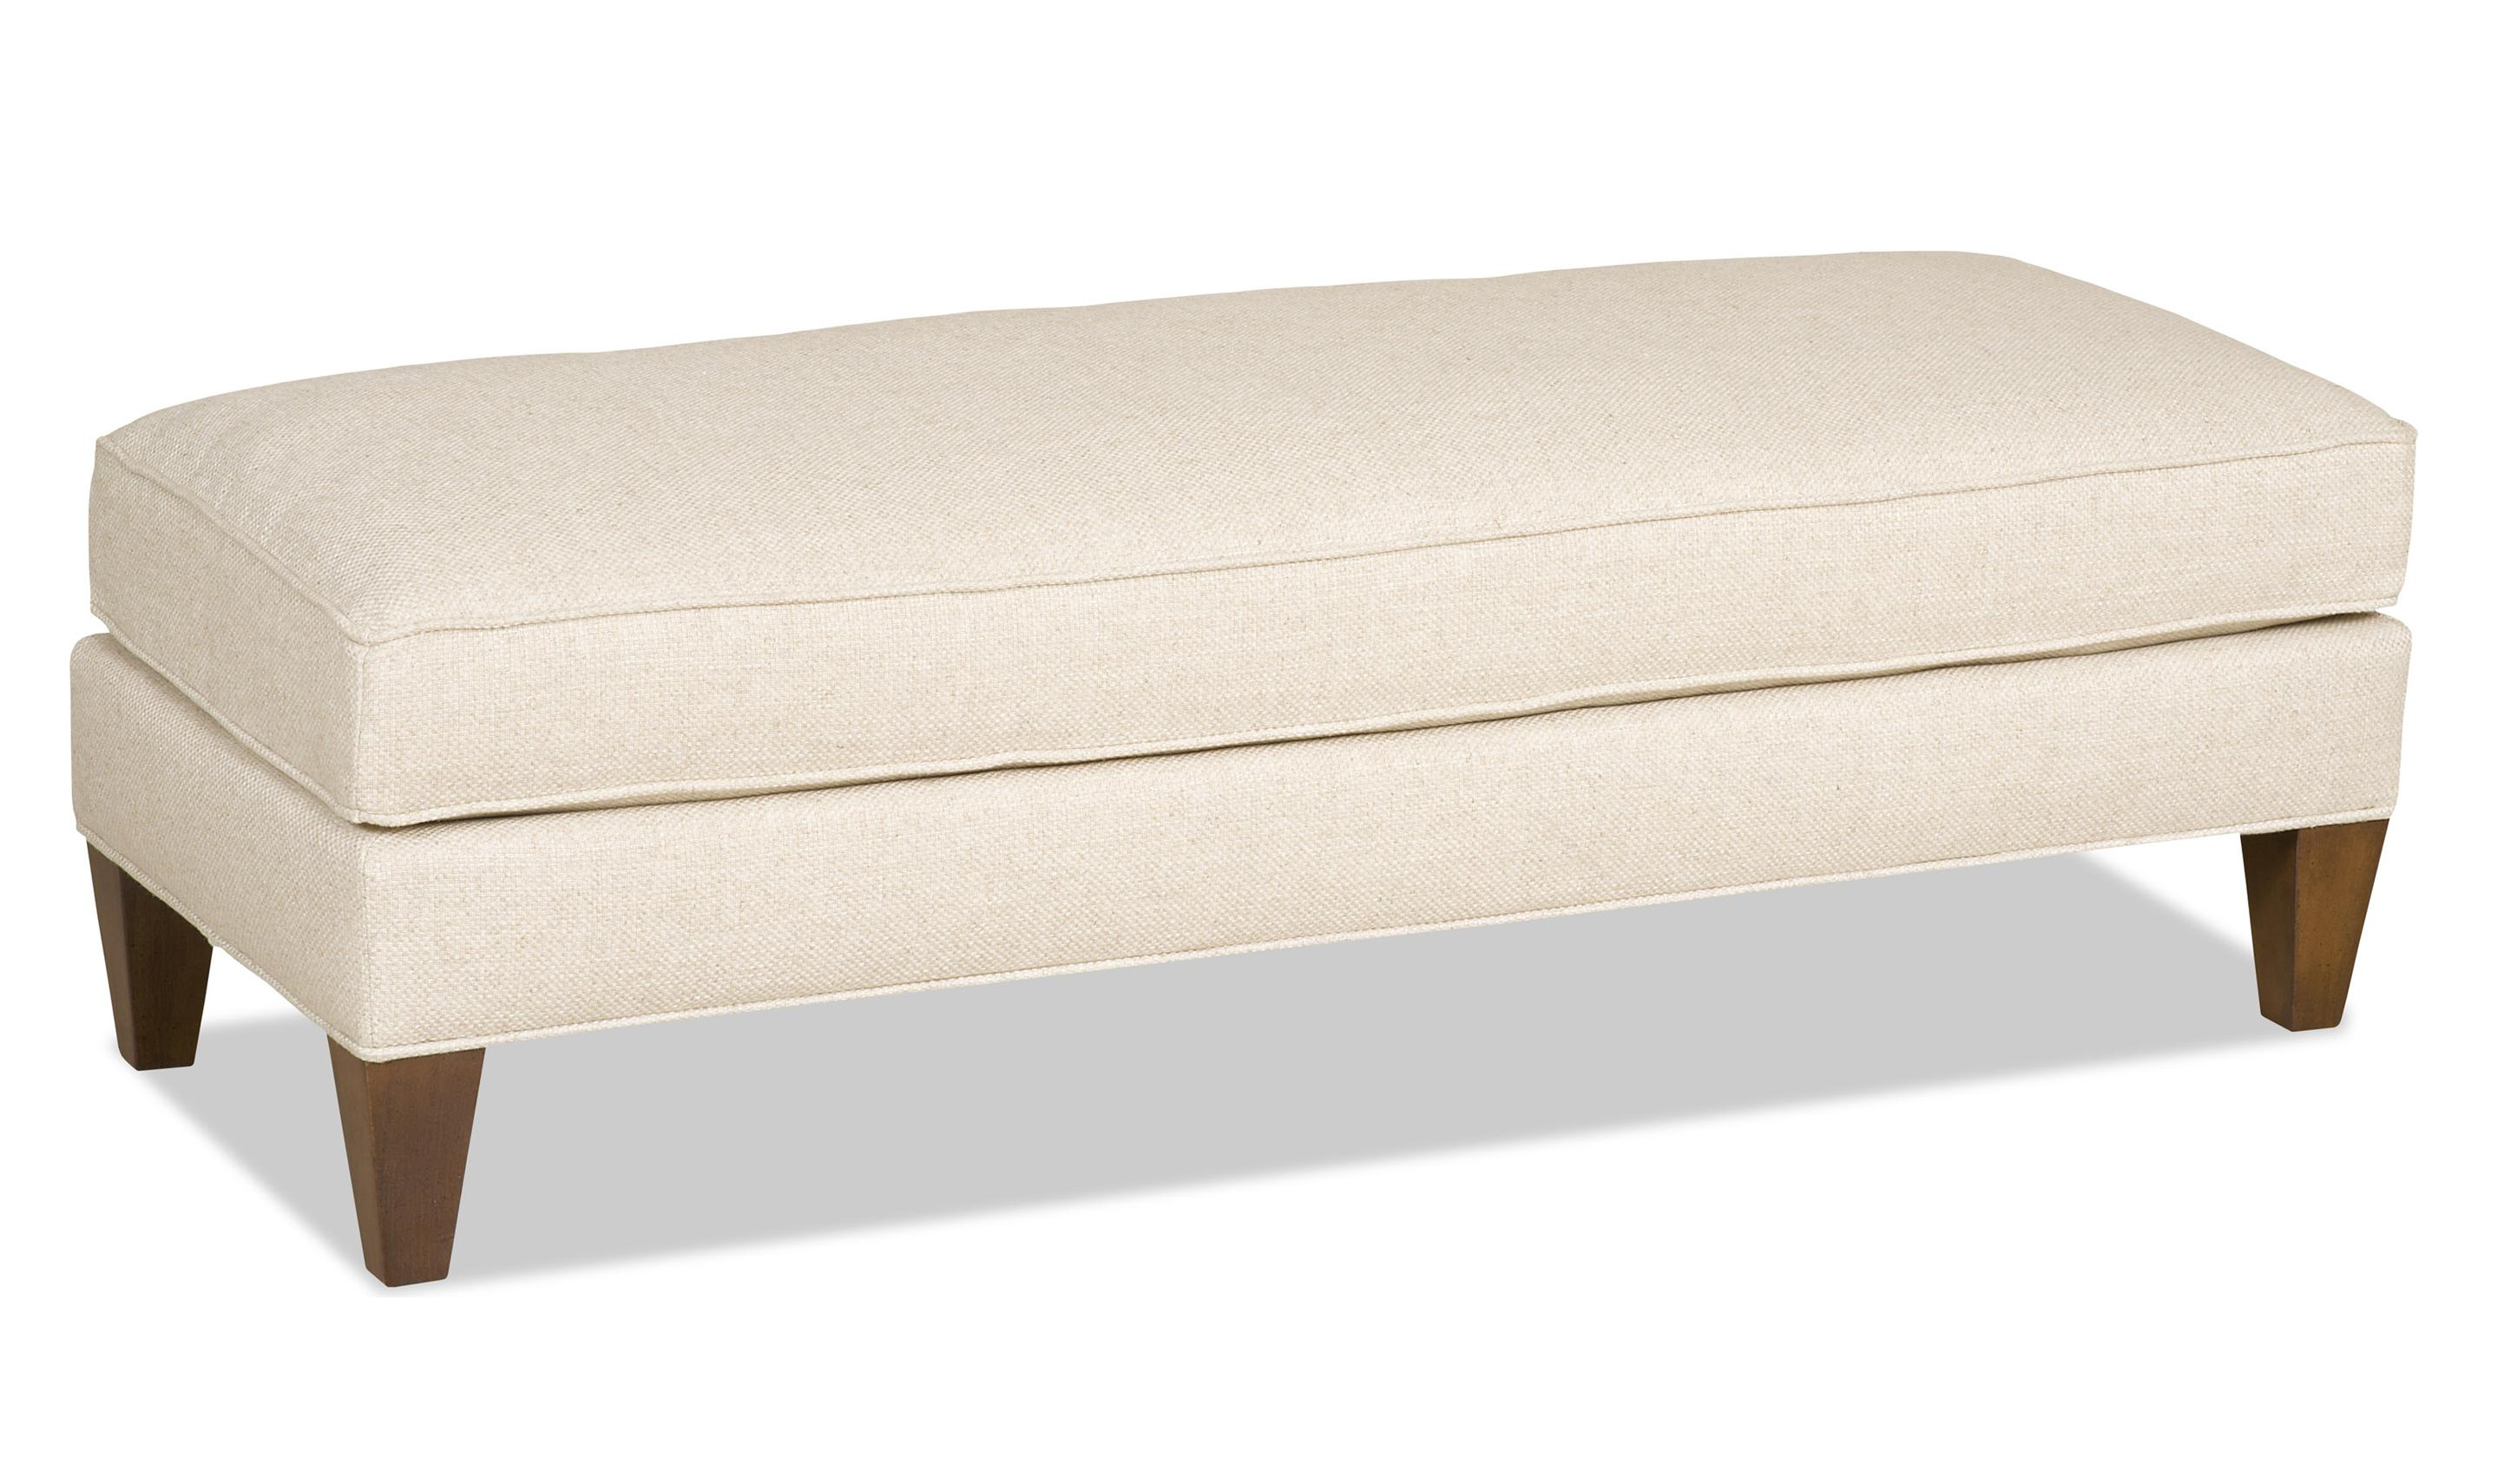 74aed5221a24 Sam Moore Arden Settee-Size Ottoman with Exposed Wood Legs ...